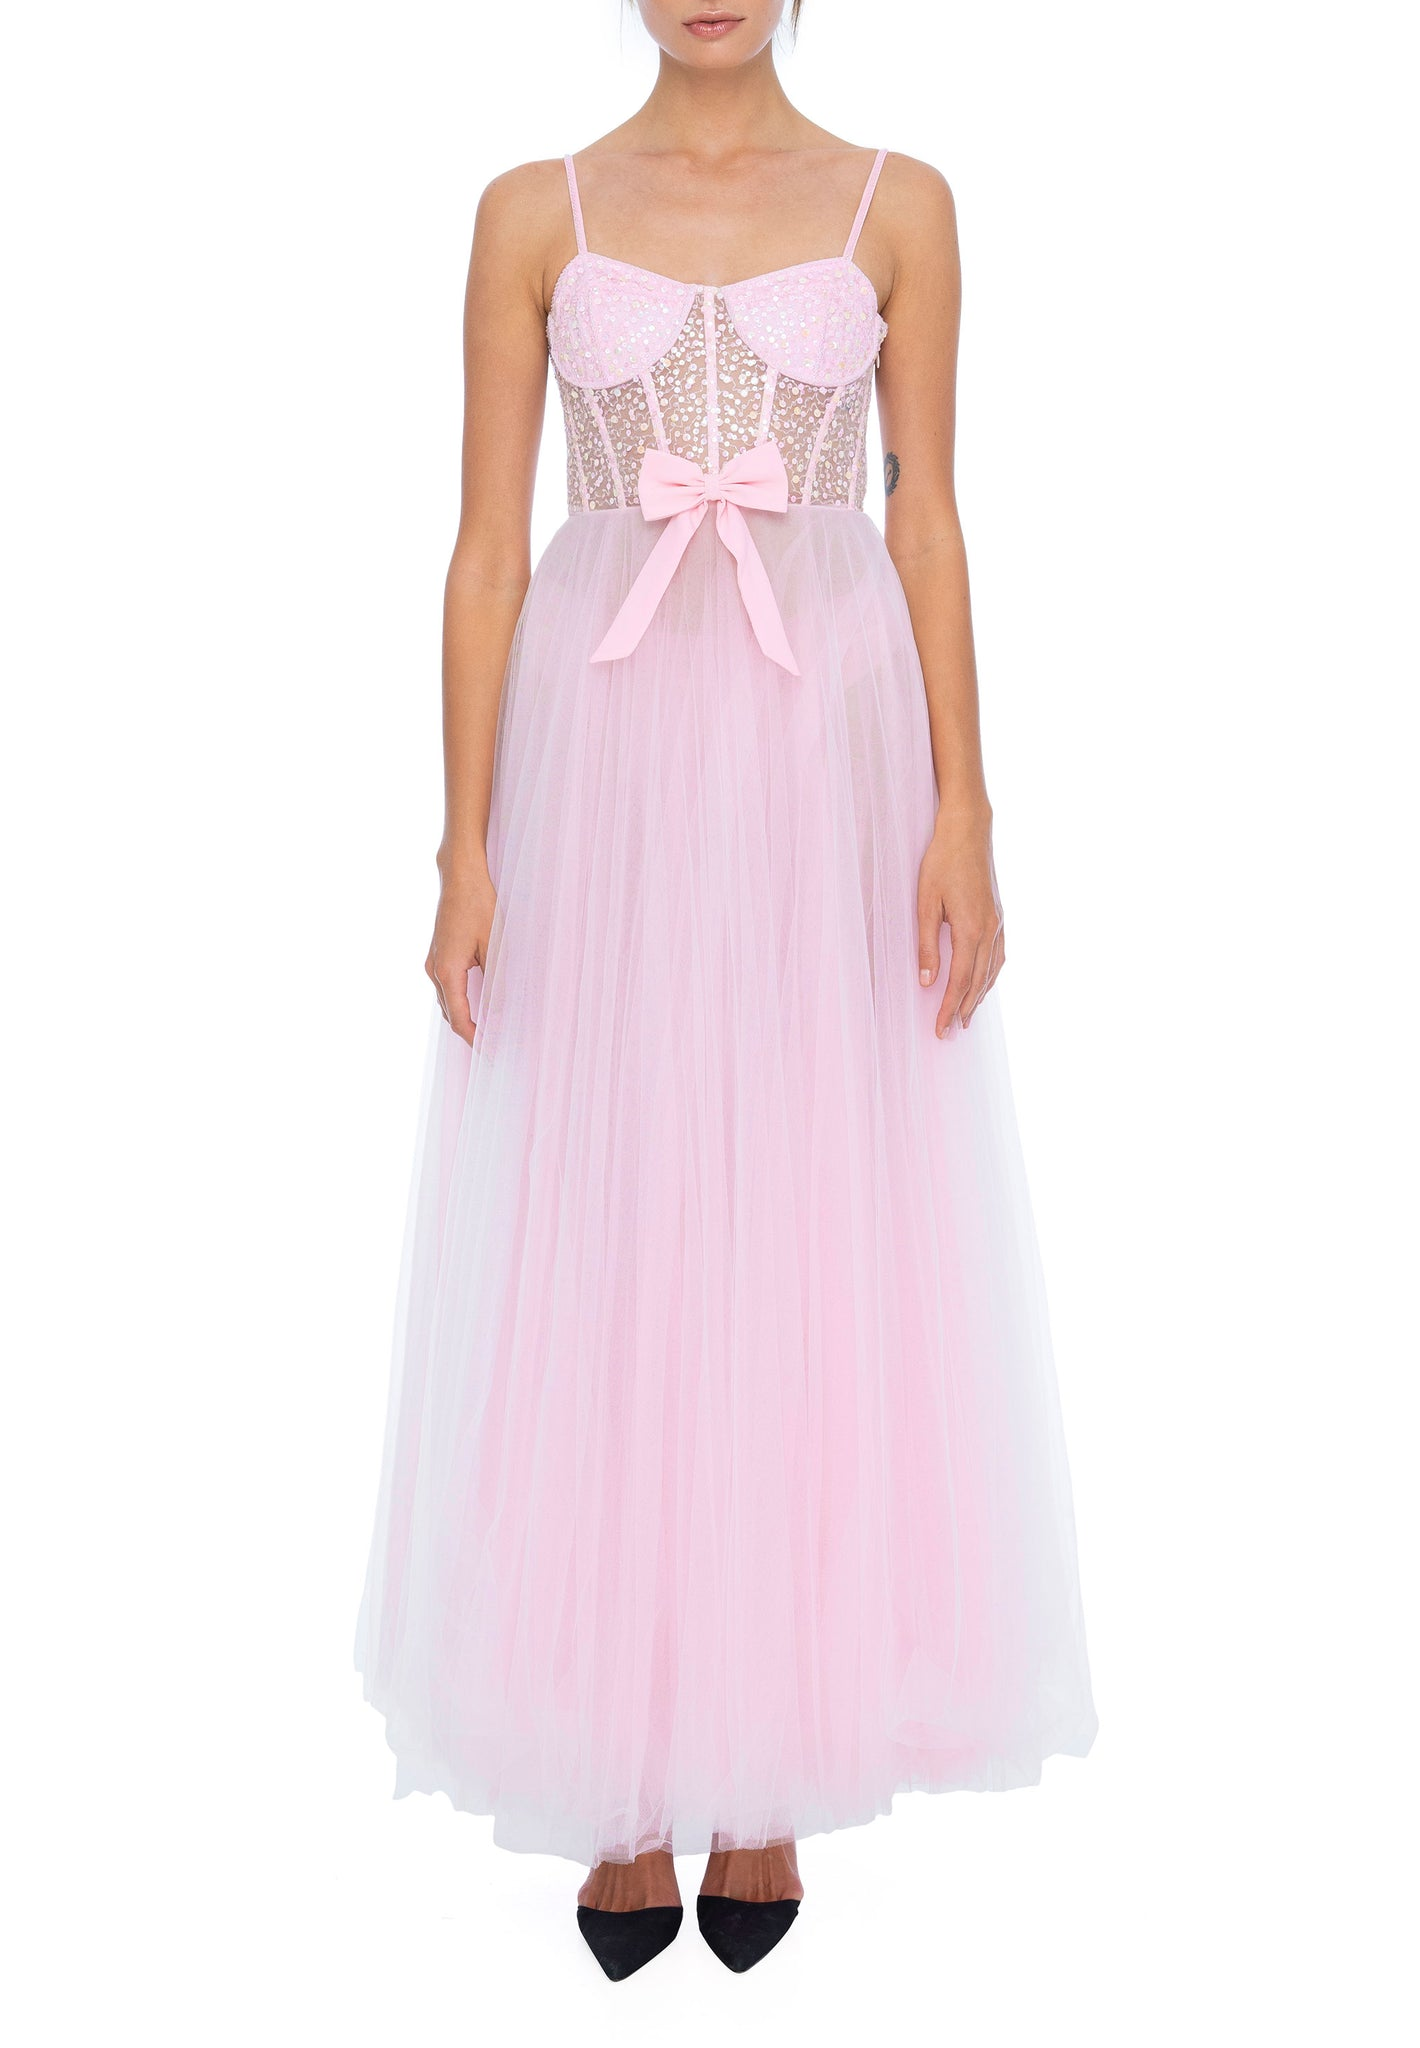 https://cdn.shopify.com/s/files/1/1129/2532/files/Nephele_Gown_in_Pink_-_Dyspnea.mp4?2886